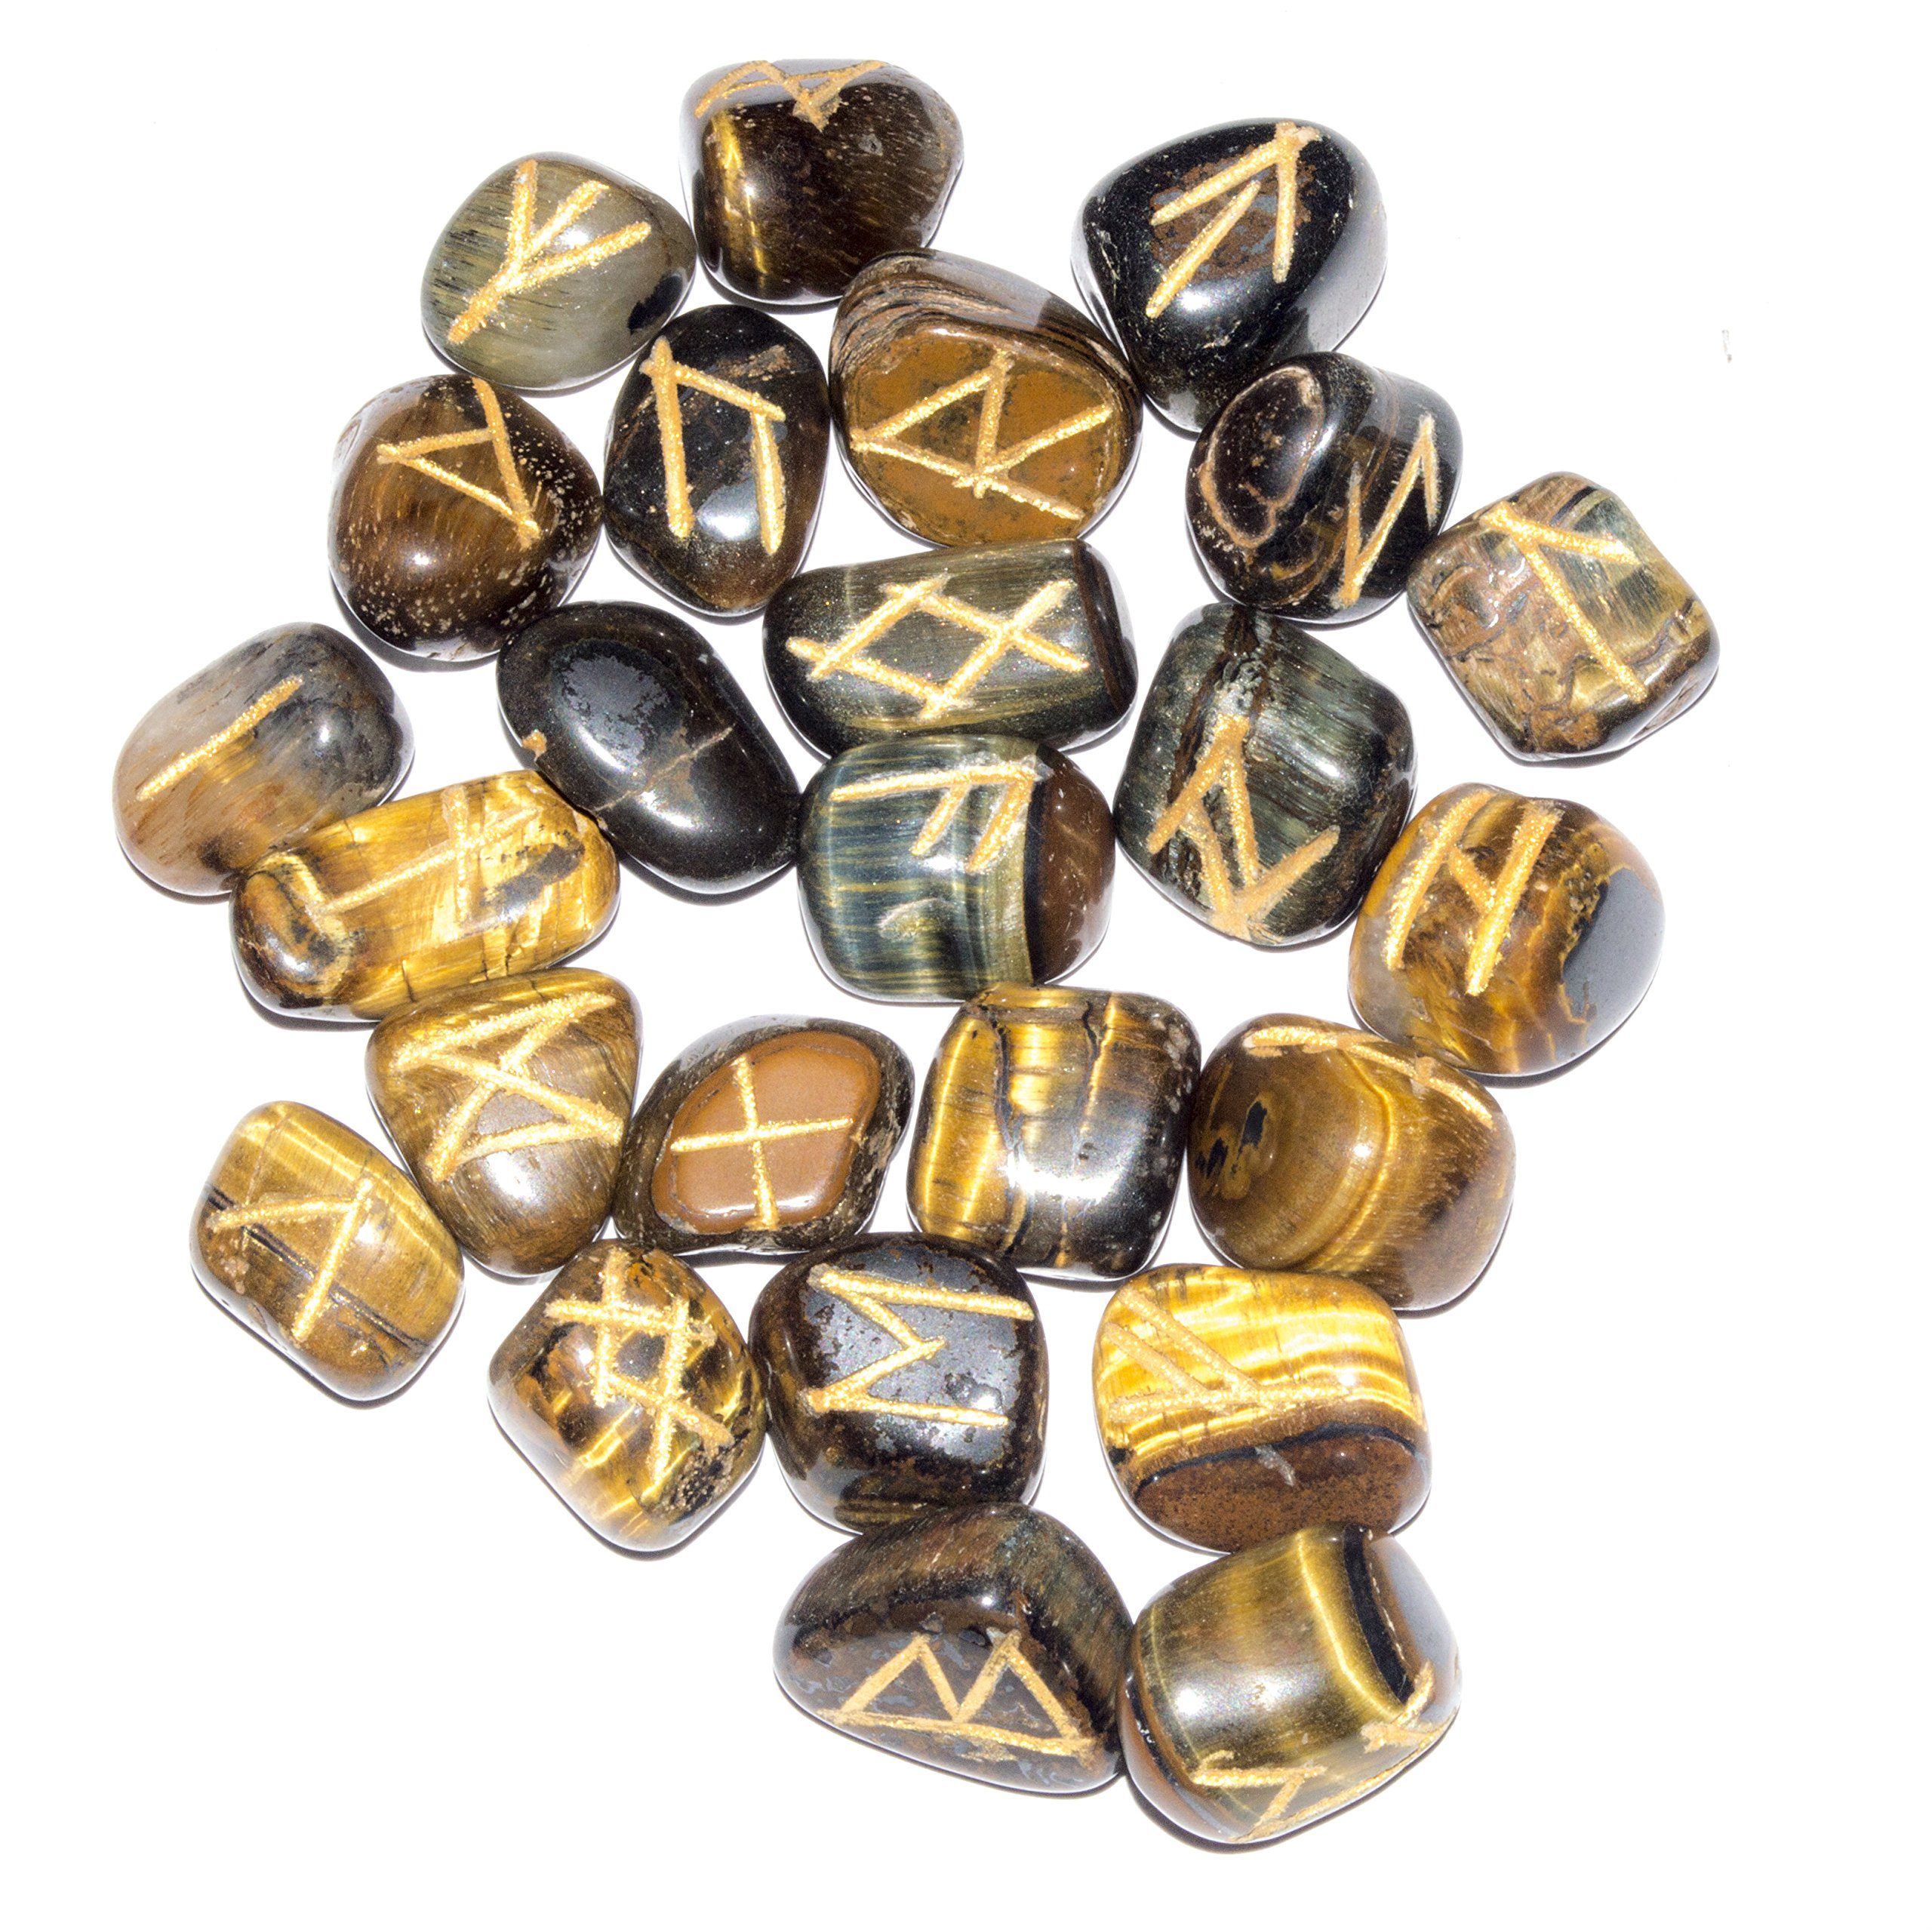 Crocon 25 Pcs Tiger Eye Rune Stones Set Reiki Healing Engraved Gemstone Kit Energy Generator for Chakra Balancing Aura Cleansing & EMF Protection Size 15-20 mm